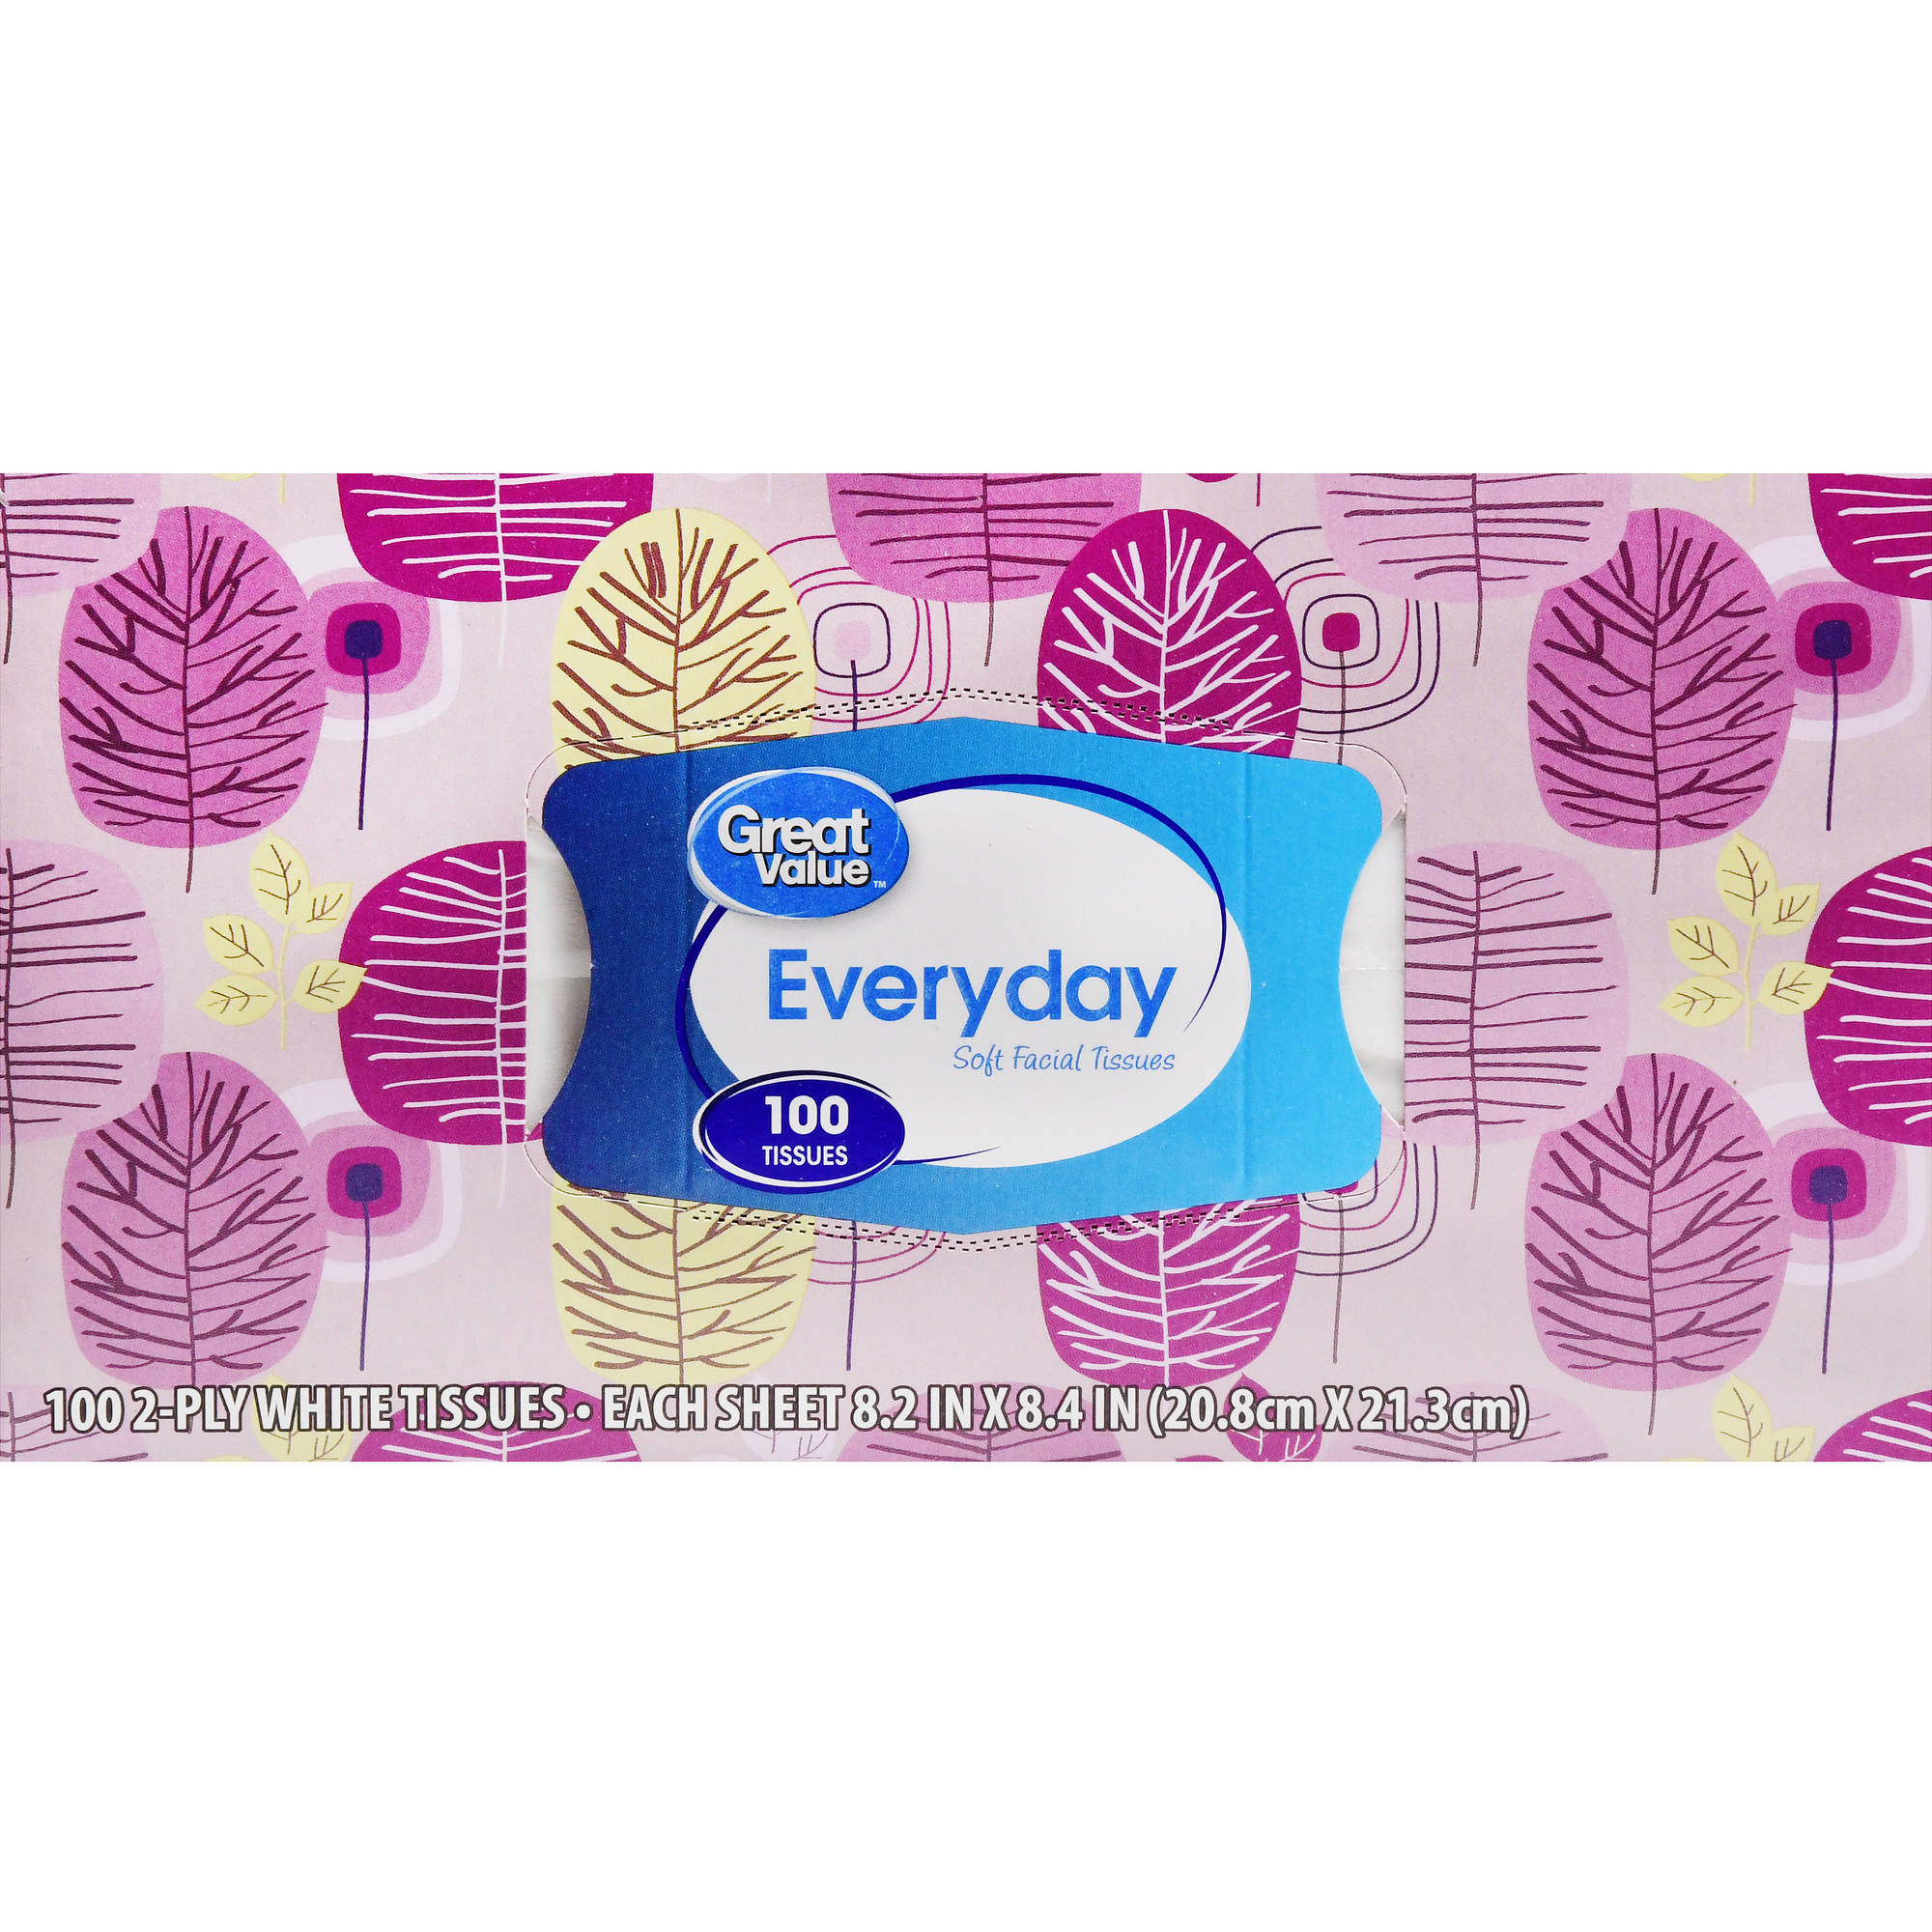 Great Value Every Soft Facial Tissues, 2 Ply, 100 Count